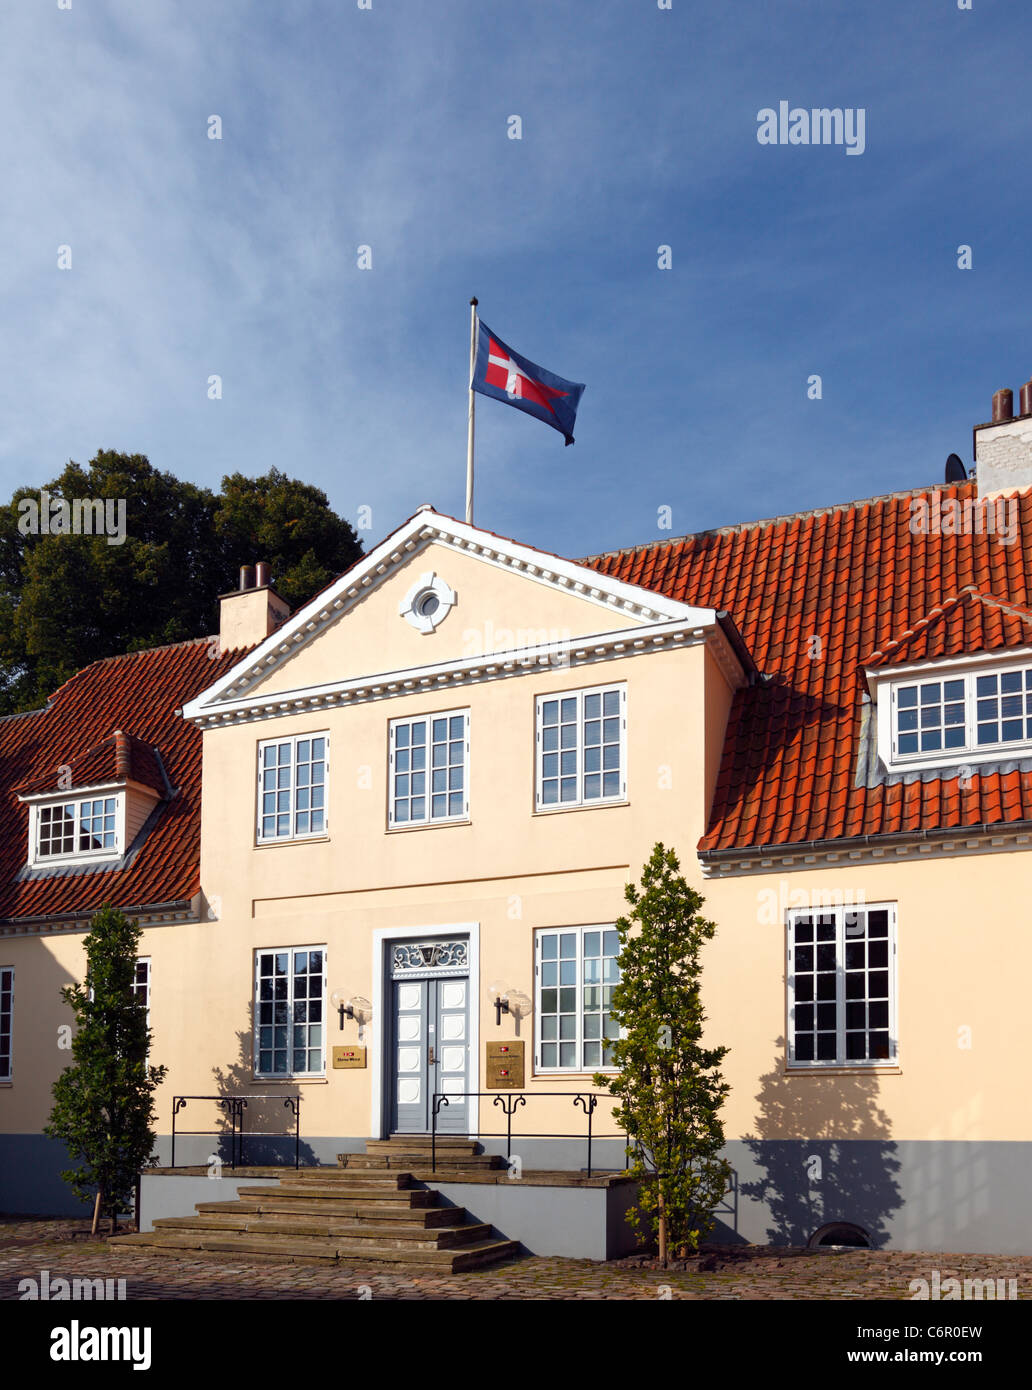 The domicile / headquarters of the Dannebrog Group, Stena Weco, and Nordana shipping - in Rungsted Kyst, Denmark - Stock Image